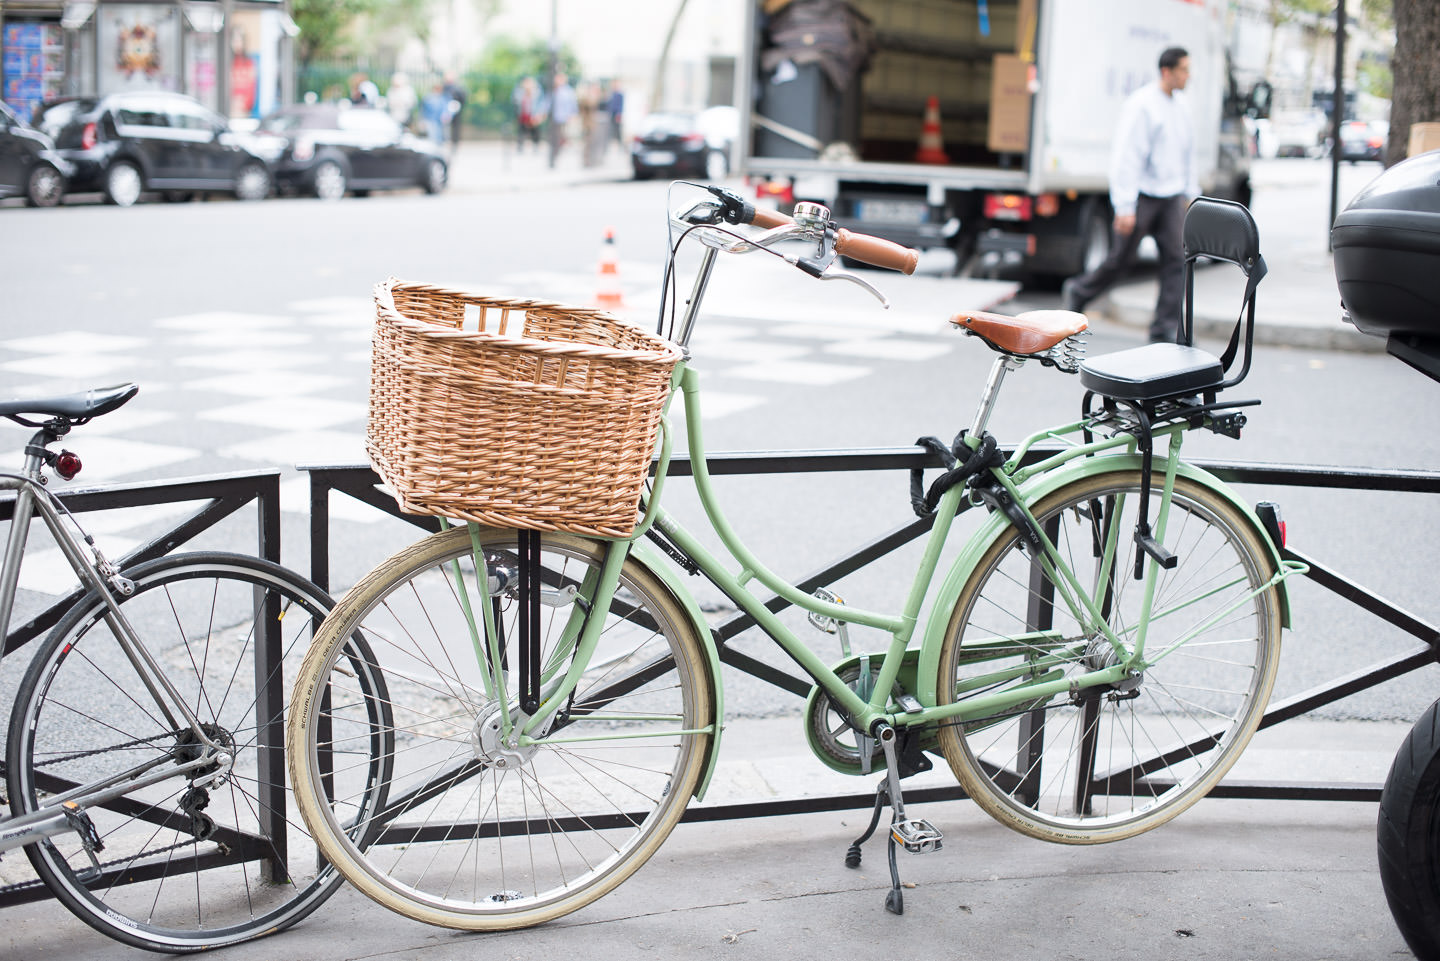 Blog-Mode-And-The-City-Lifestyle-5-petites-choses-148-vélo-mint